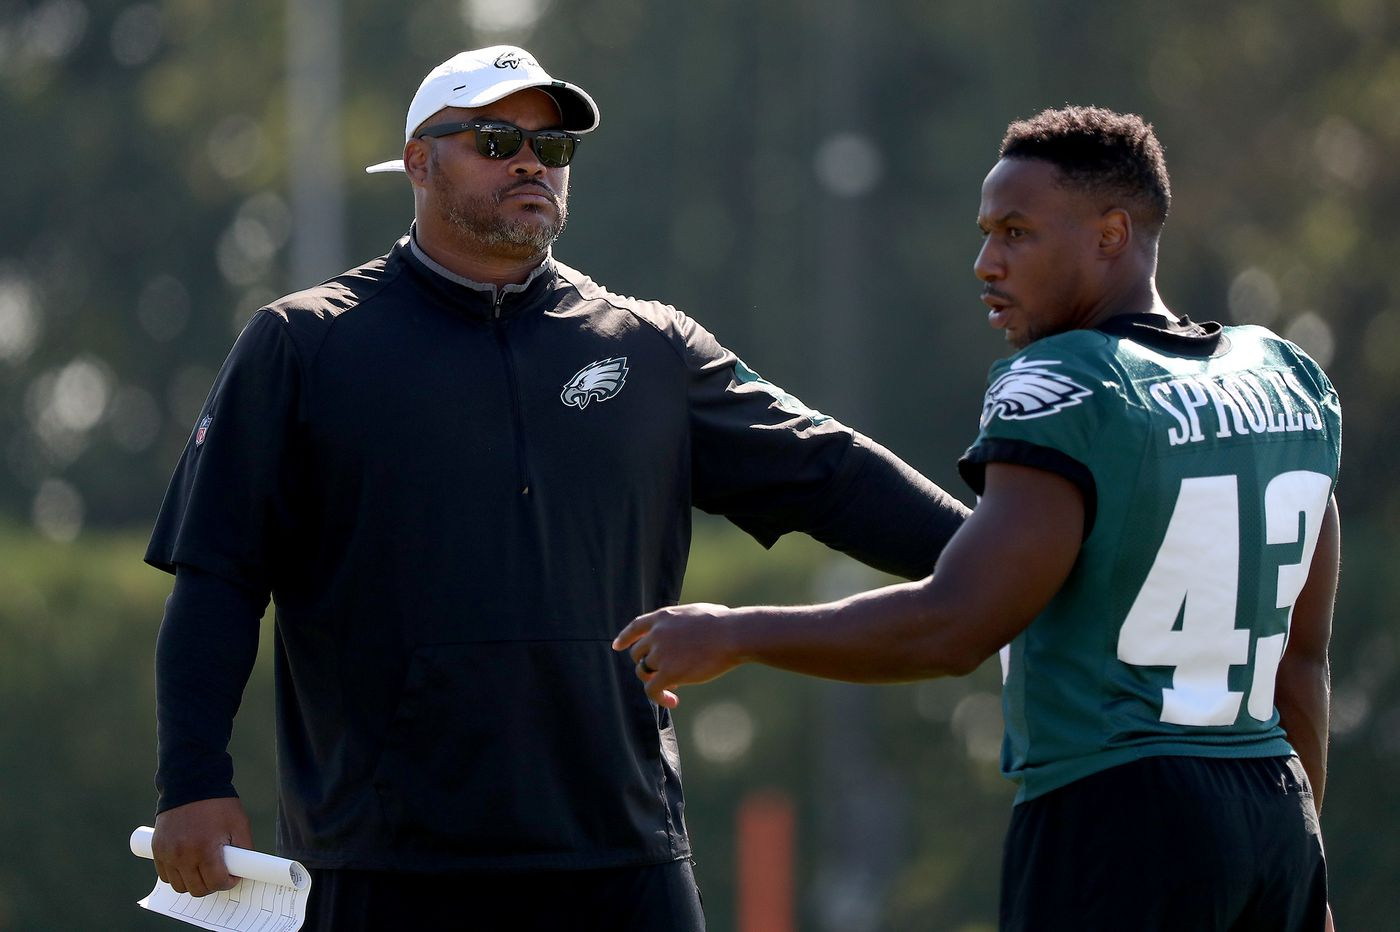 After being bypassed for promotion twice, Eagles RBs coach Duce Staley should be unhappy, but he's not